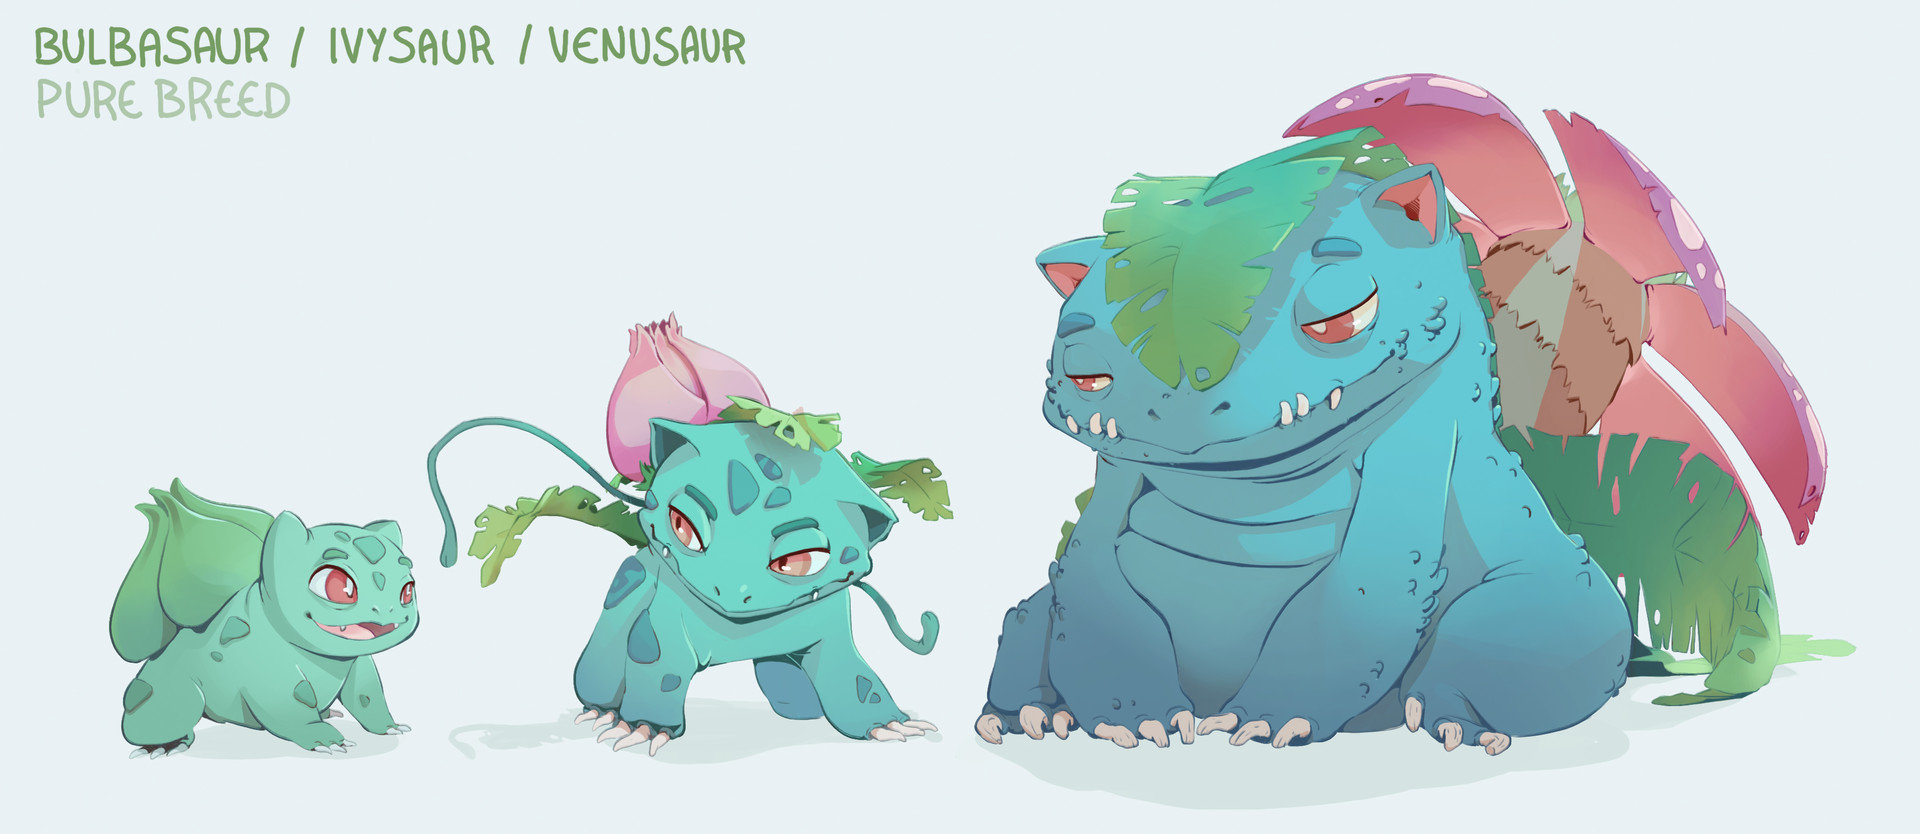 artstation bulbasaur family pure breed alyzian bui d armagnac